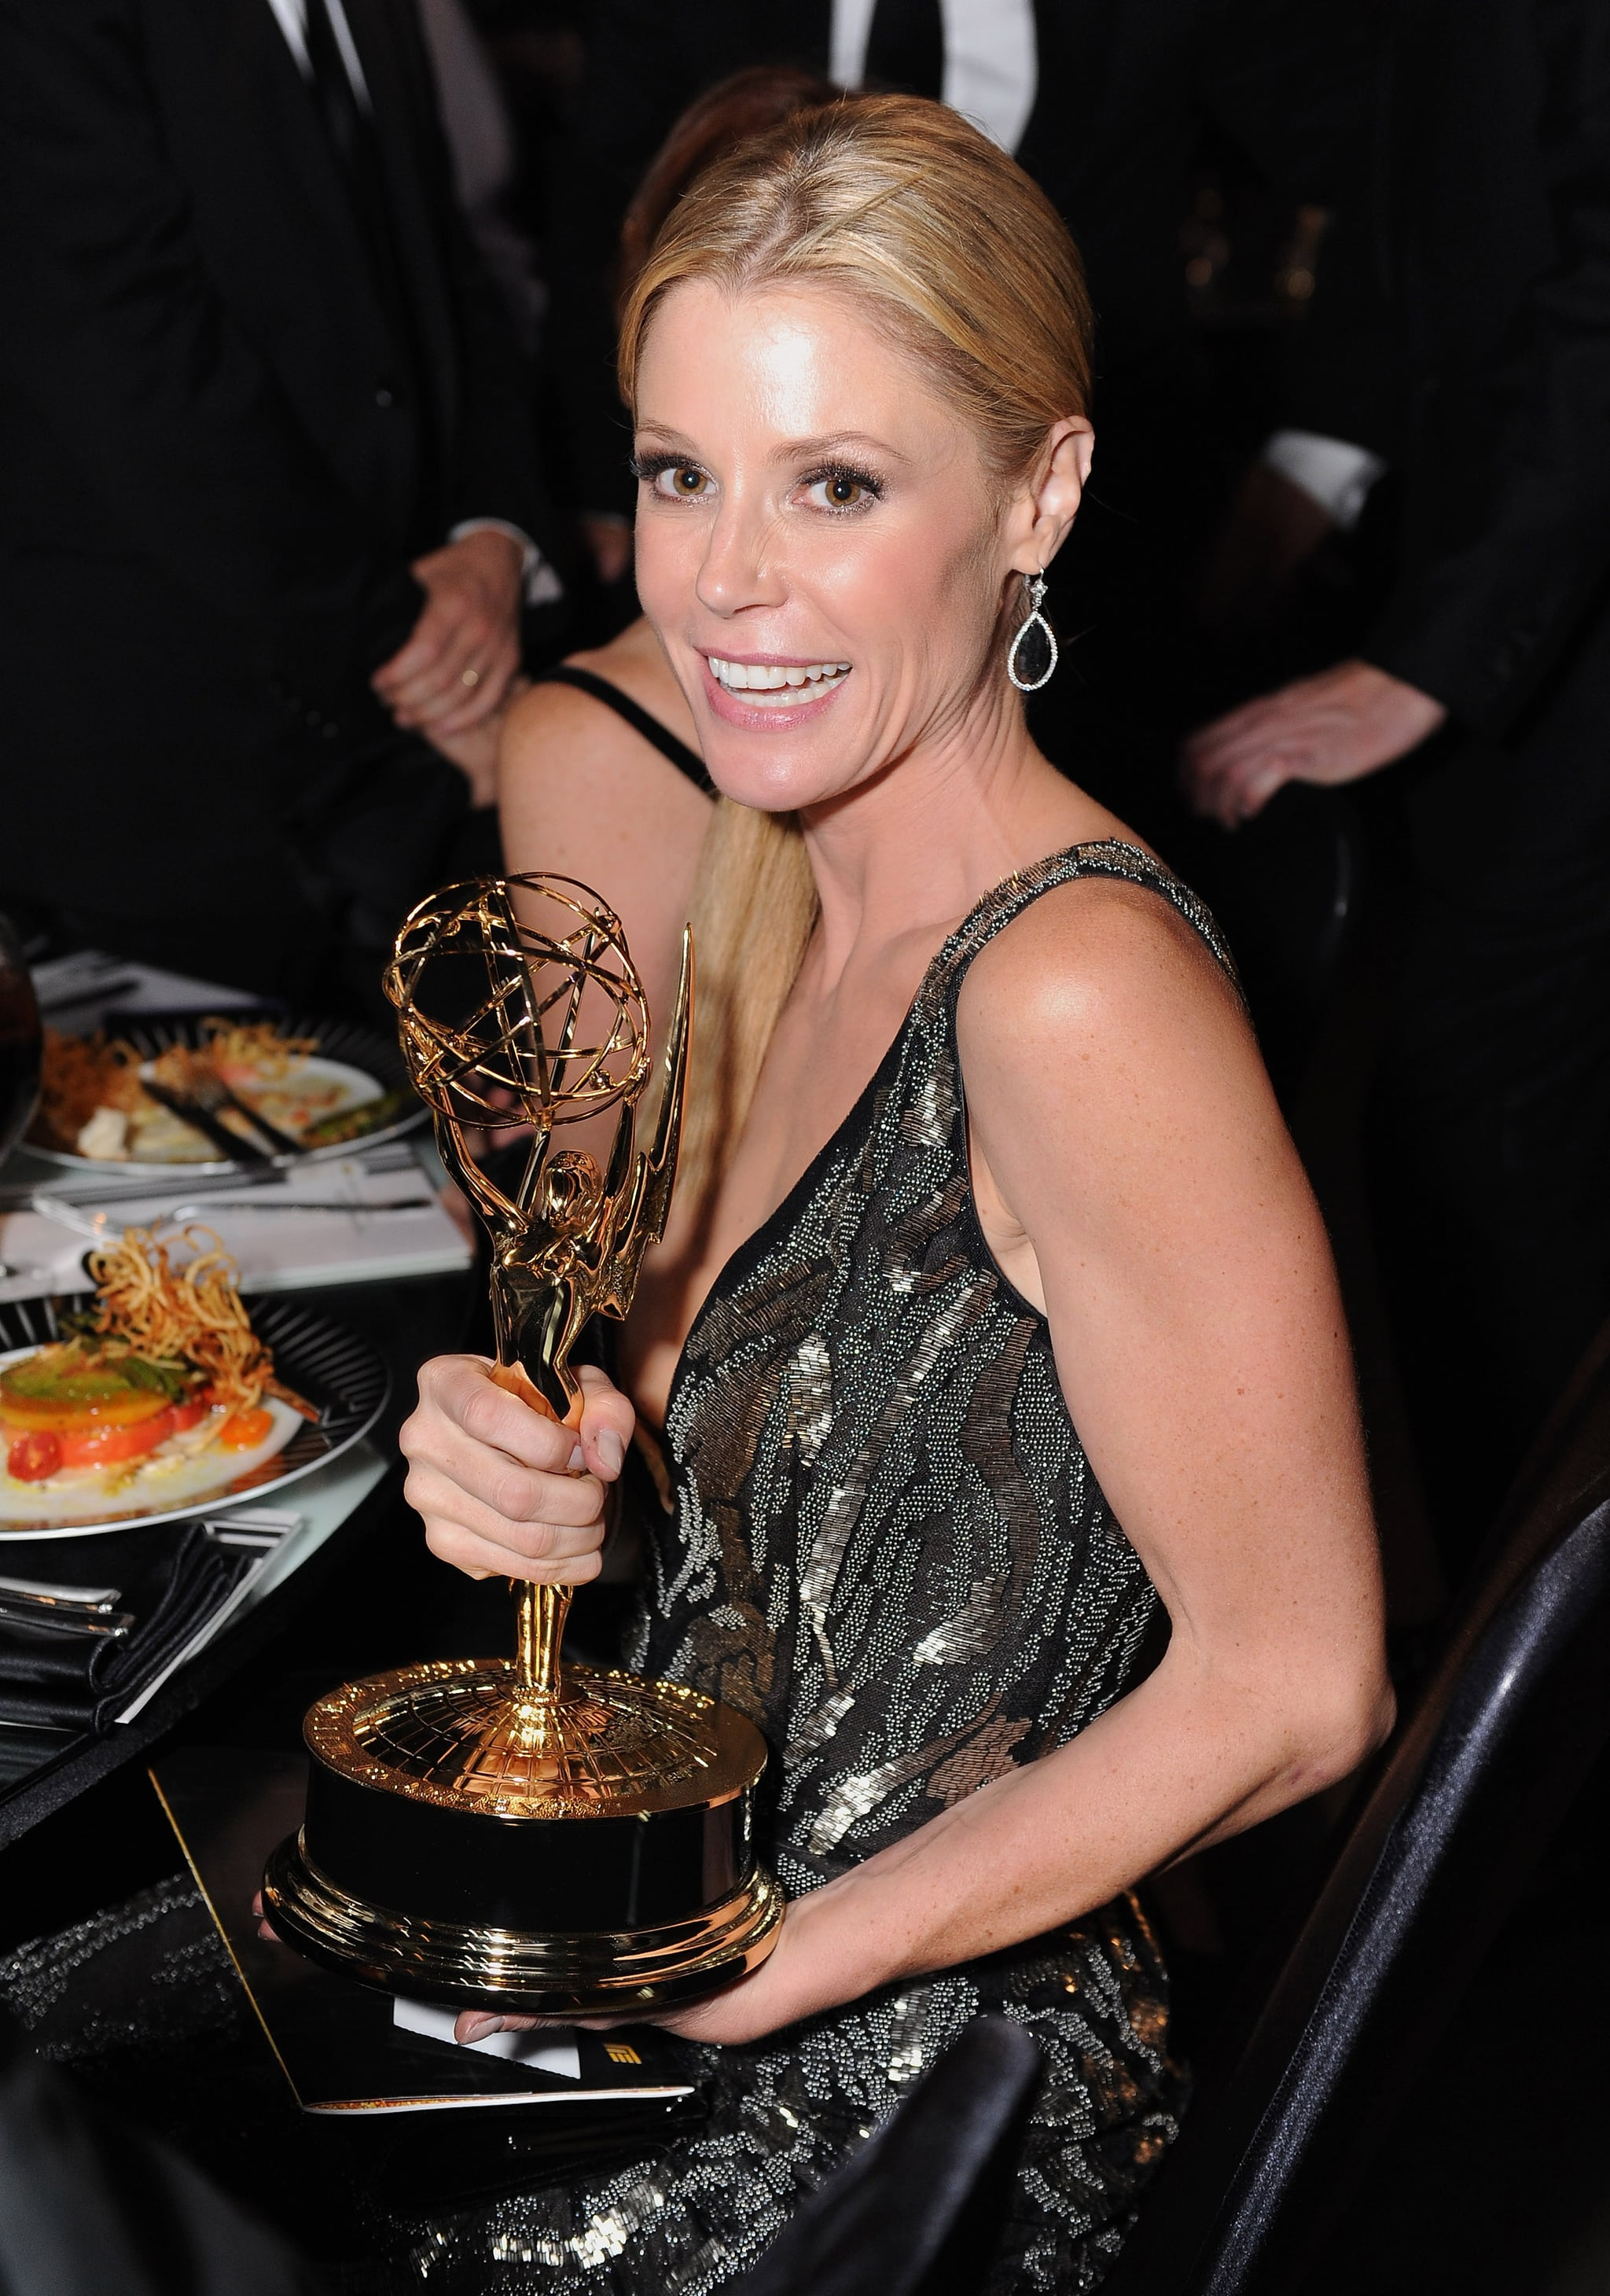 Julie Bowen with her statue at the Emmy's Governor's Ball.